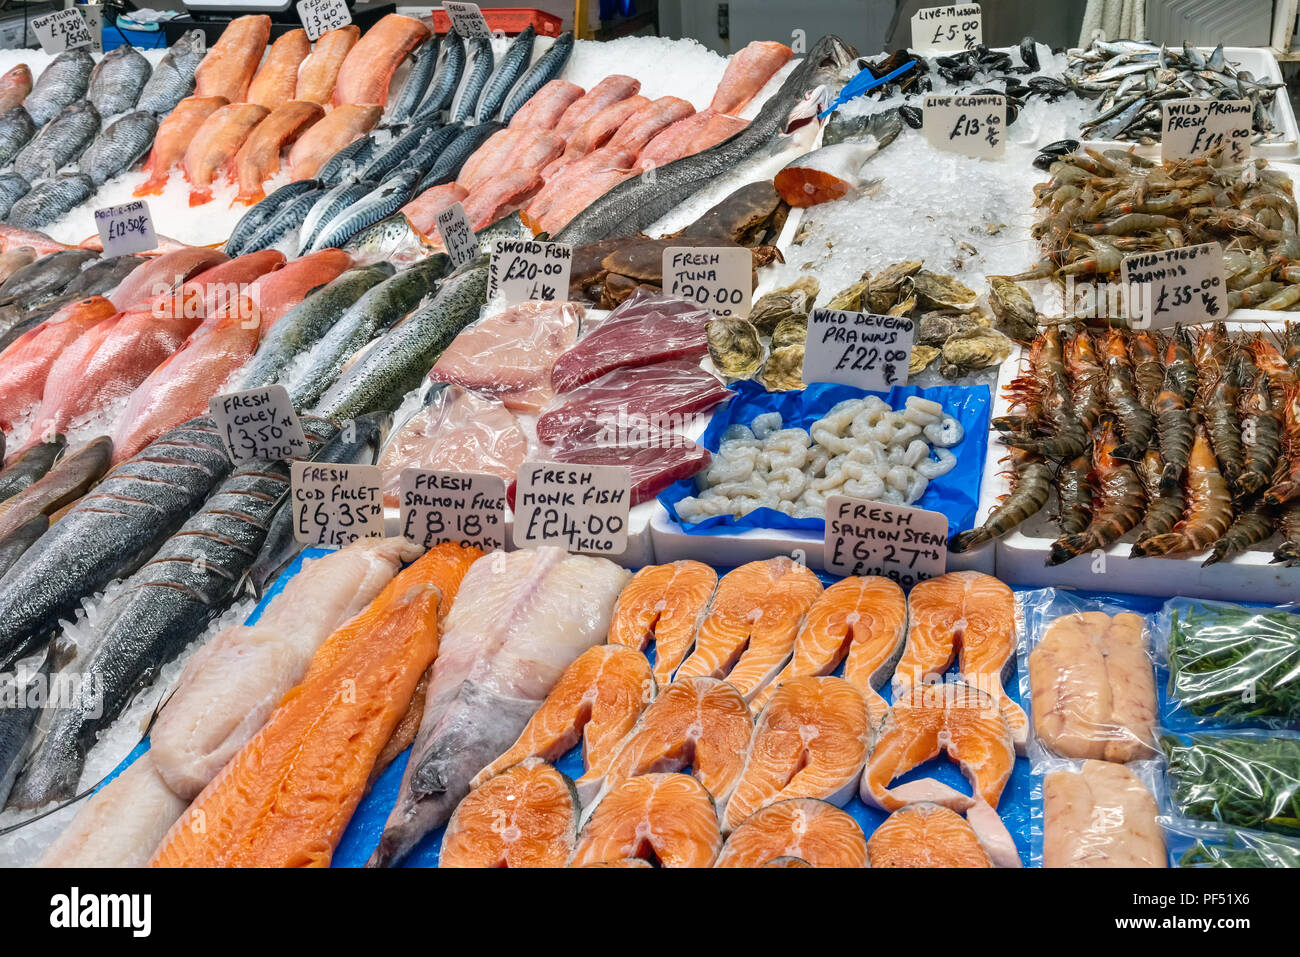 Fresh fish and crustaceans for sale at a market in Brixton, London - Stock Image